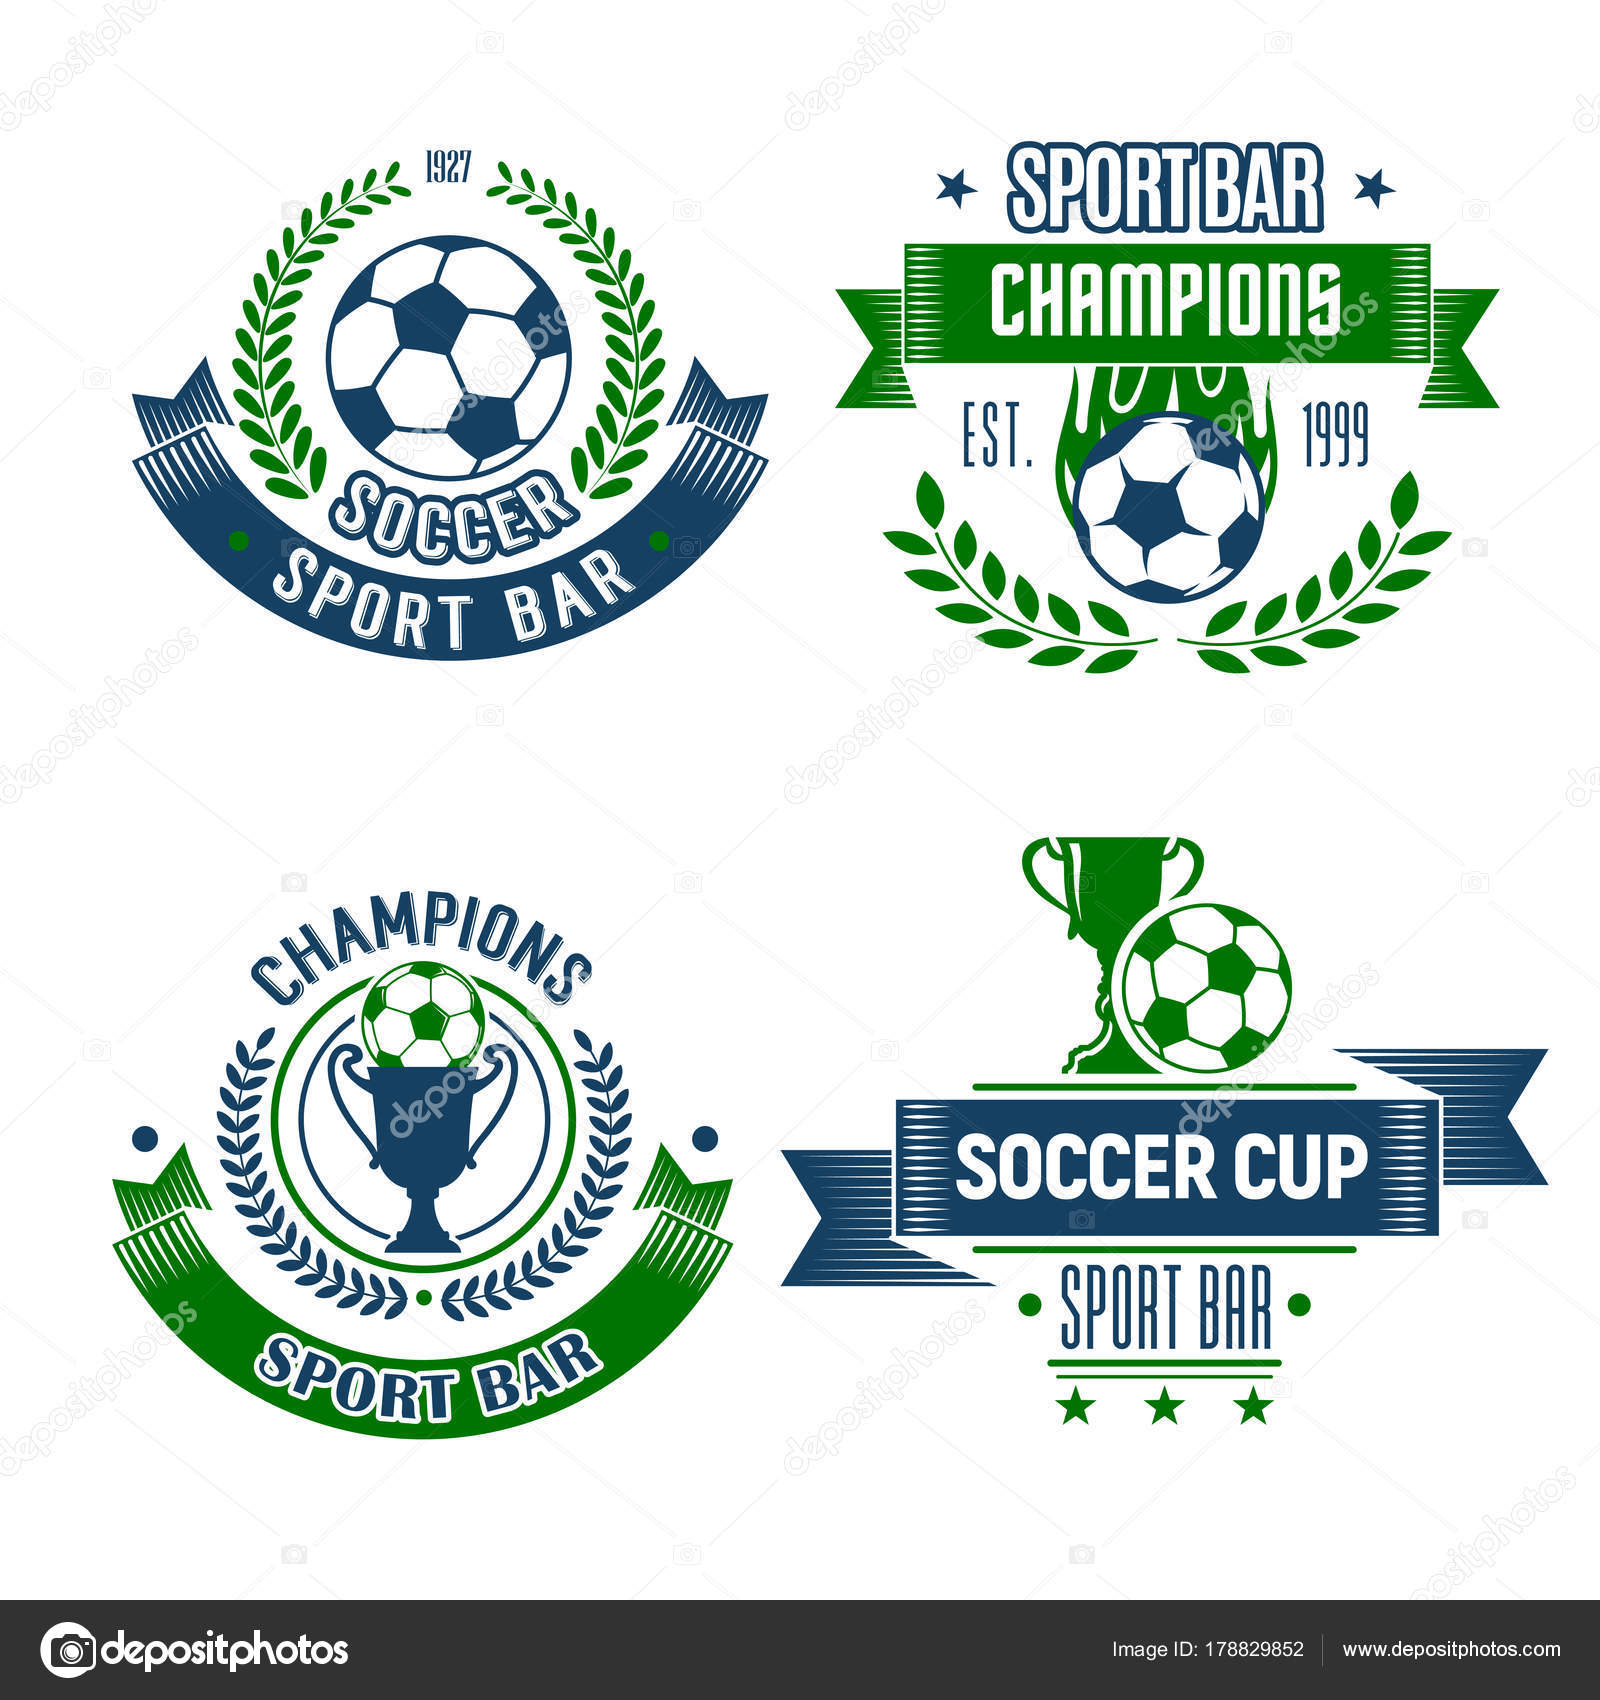 Soccer ball and trophy icon for football sport bar stock vector soccer ball with trophy icons for football sport bar soccer ball and winner cup isolated symbol for sport pub design framed with champion laurel wreath buycottarizona